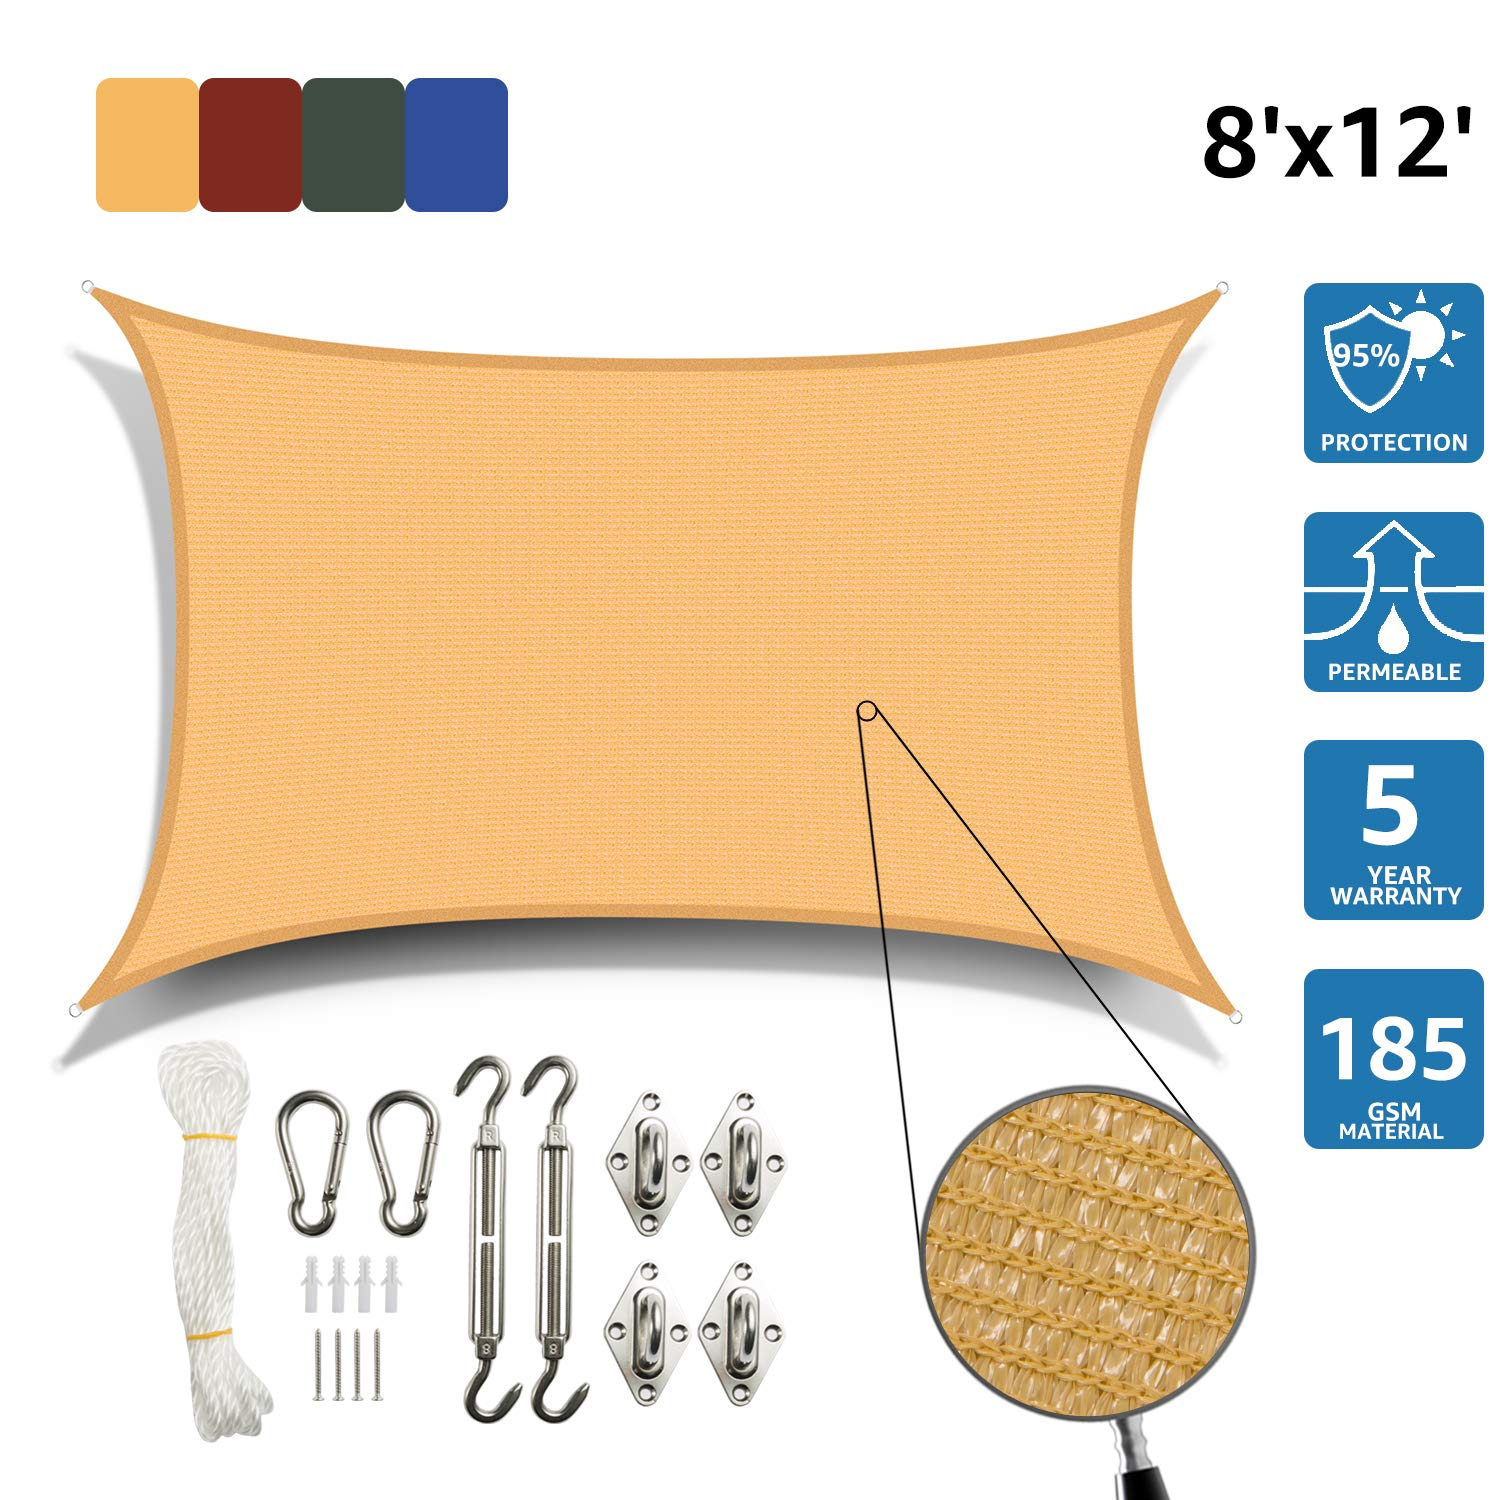 SunnyJoy Rectangle 8'x12' Sun Shade Sail with Stainless Steel Hardware Kit, Perfect for Outdoor Patio Garden, Sand by SunnyJoy